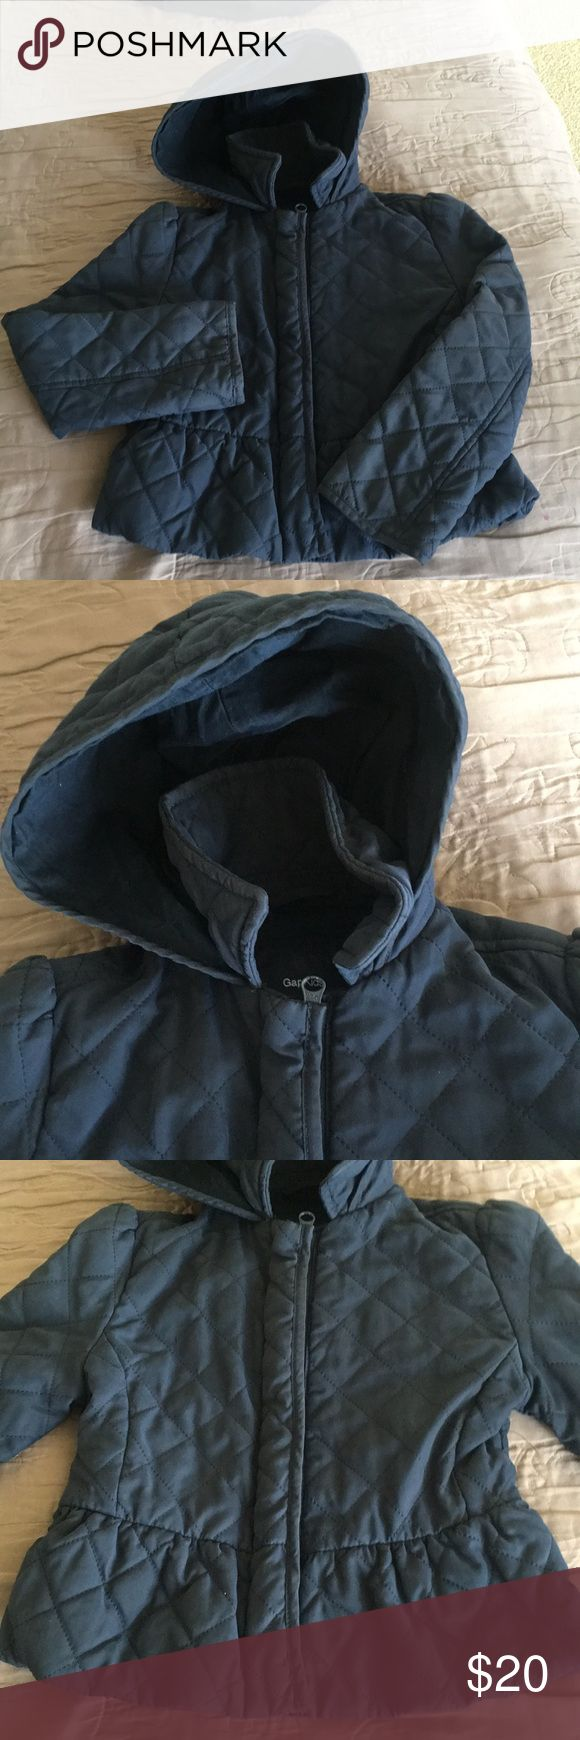 Navy Gap Jacket Navy blue quilted Gap jacket. Great cut. Has a hood. Nice and warm. Great color and cute. GAP Jackets & Coats